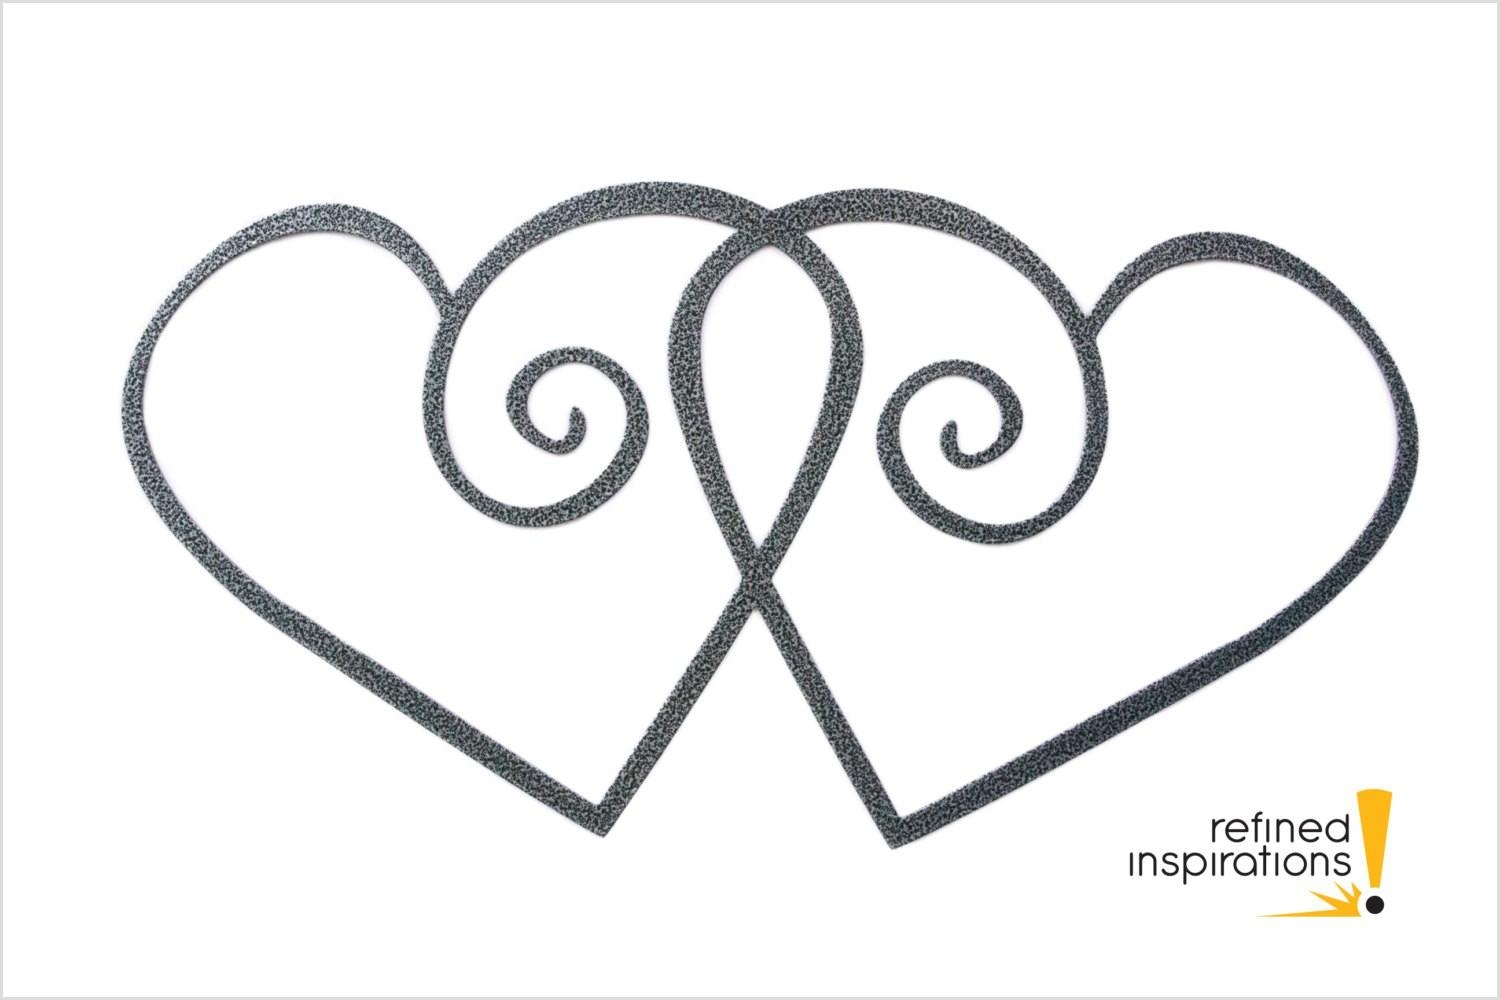 Heart Shaped Metal Wall Art Photos That Really Gorgeous – Desainnow Pertaining To Heart Shaped Metal Wall Art (View 9 of 20)